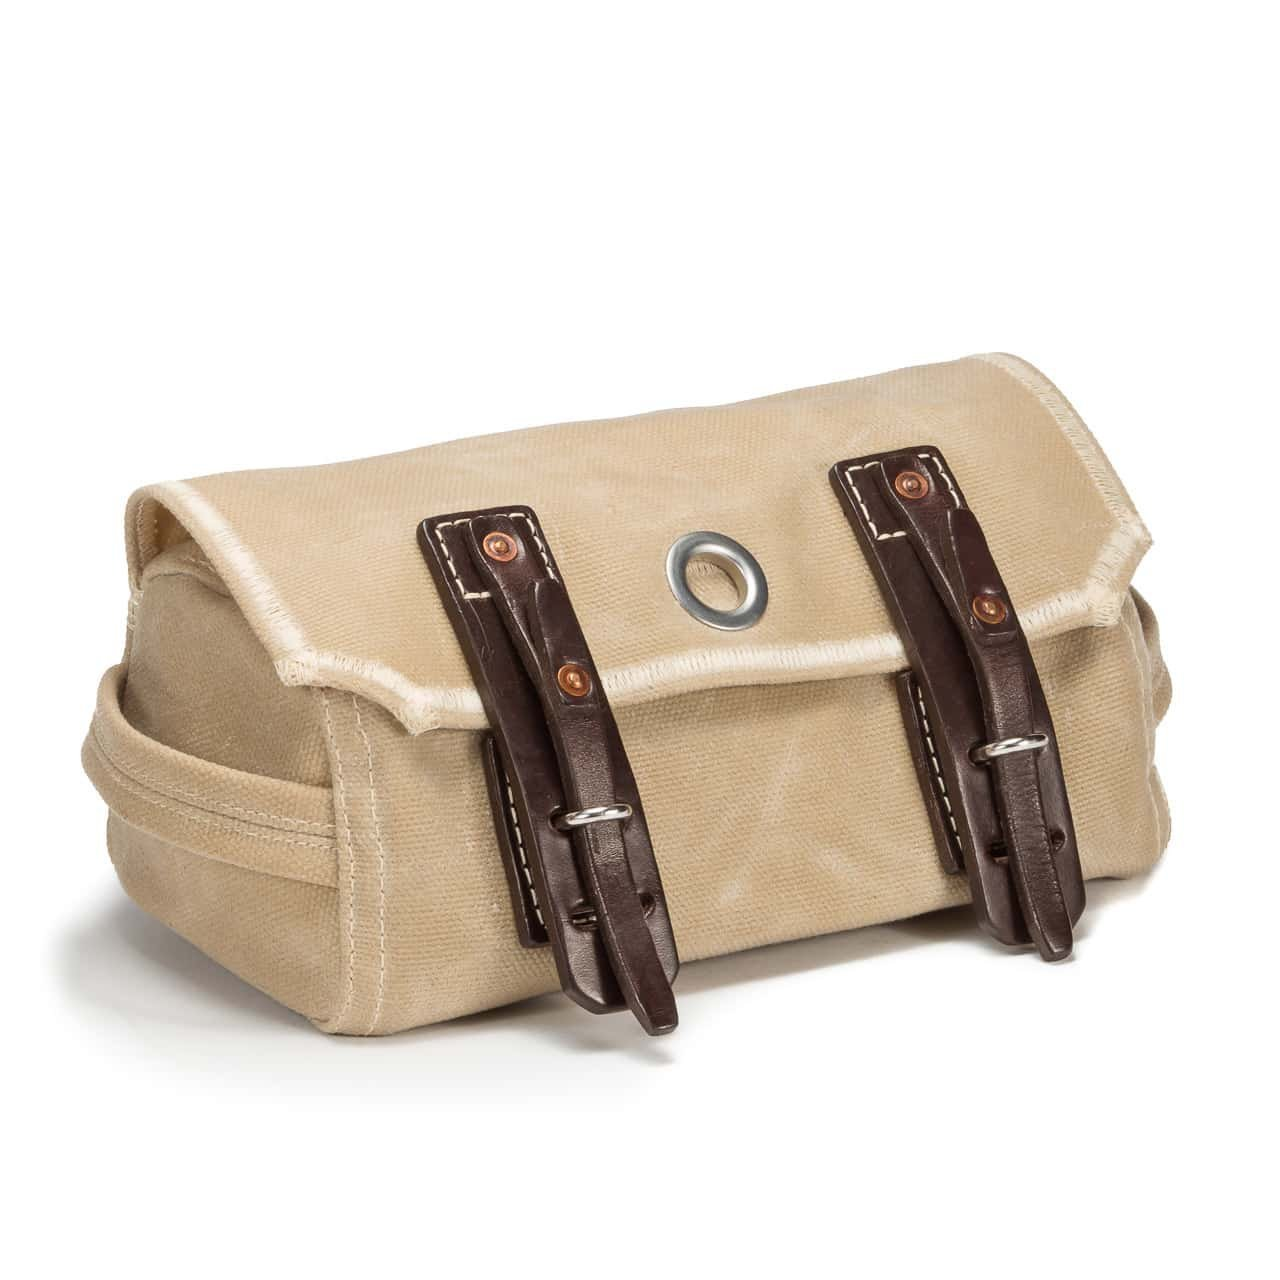 Saddleback Leather Co. Mountain Back Canvas Dopp Kit - Hanging Canvas and Leather Men's Toiletry Bag - 100 Year Warranty